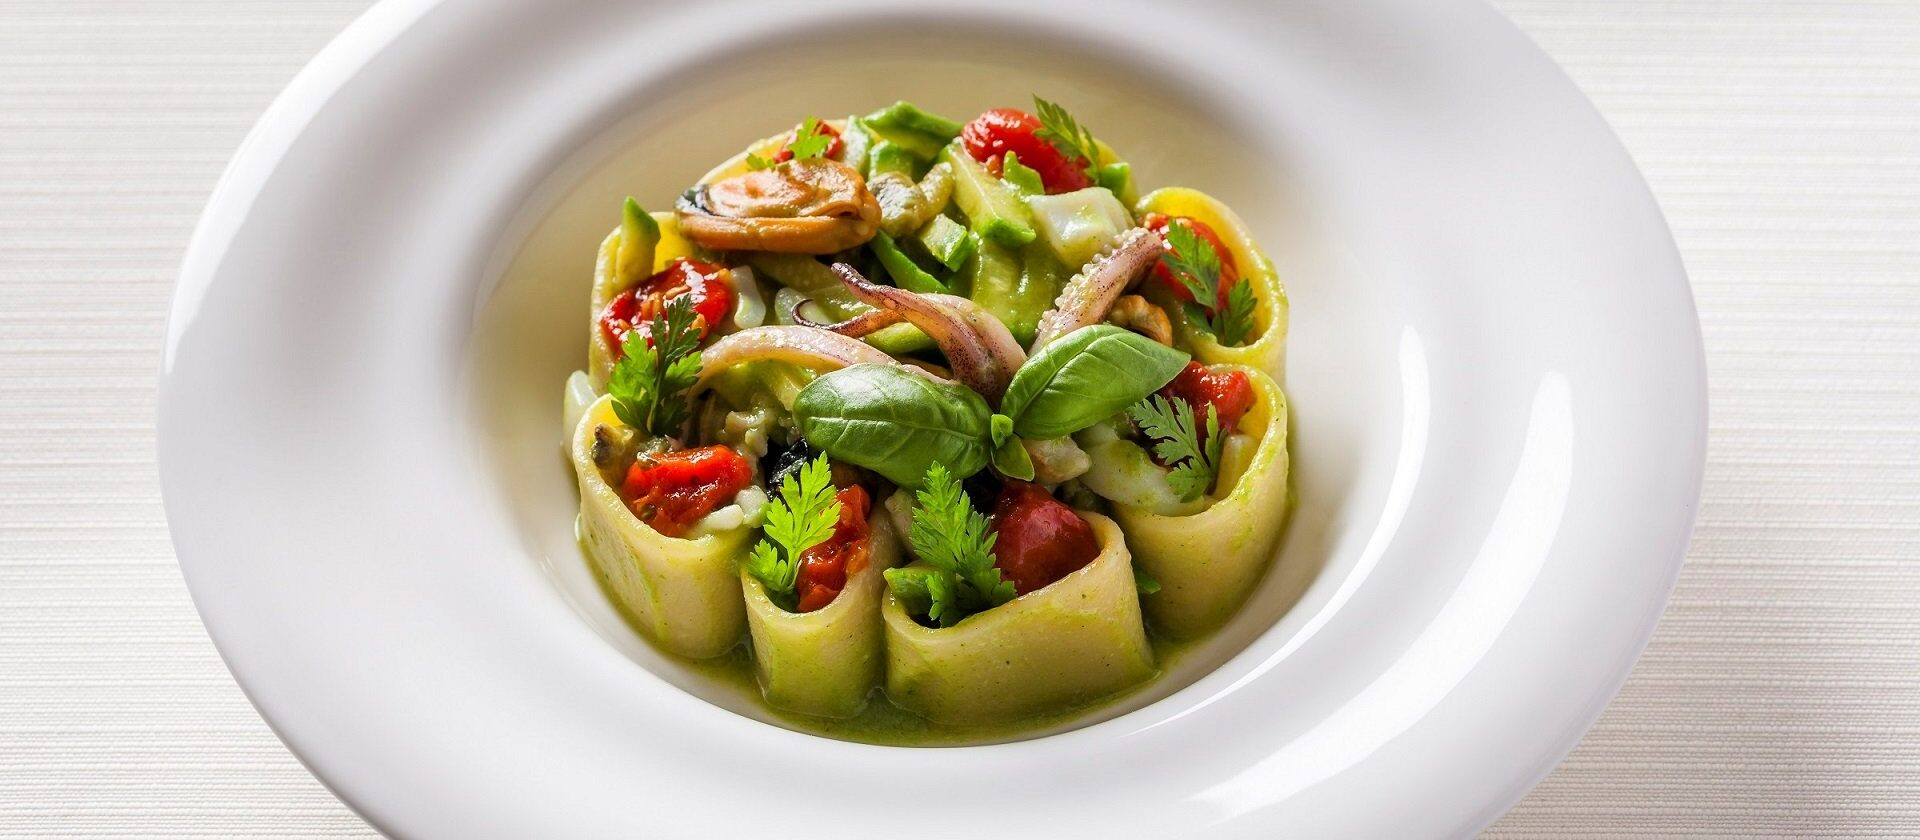 Seafood and roman courgette pasta dish served at Hotel Eden